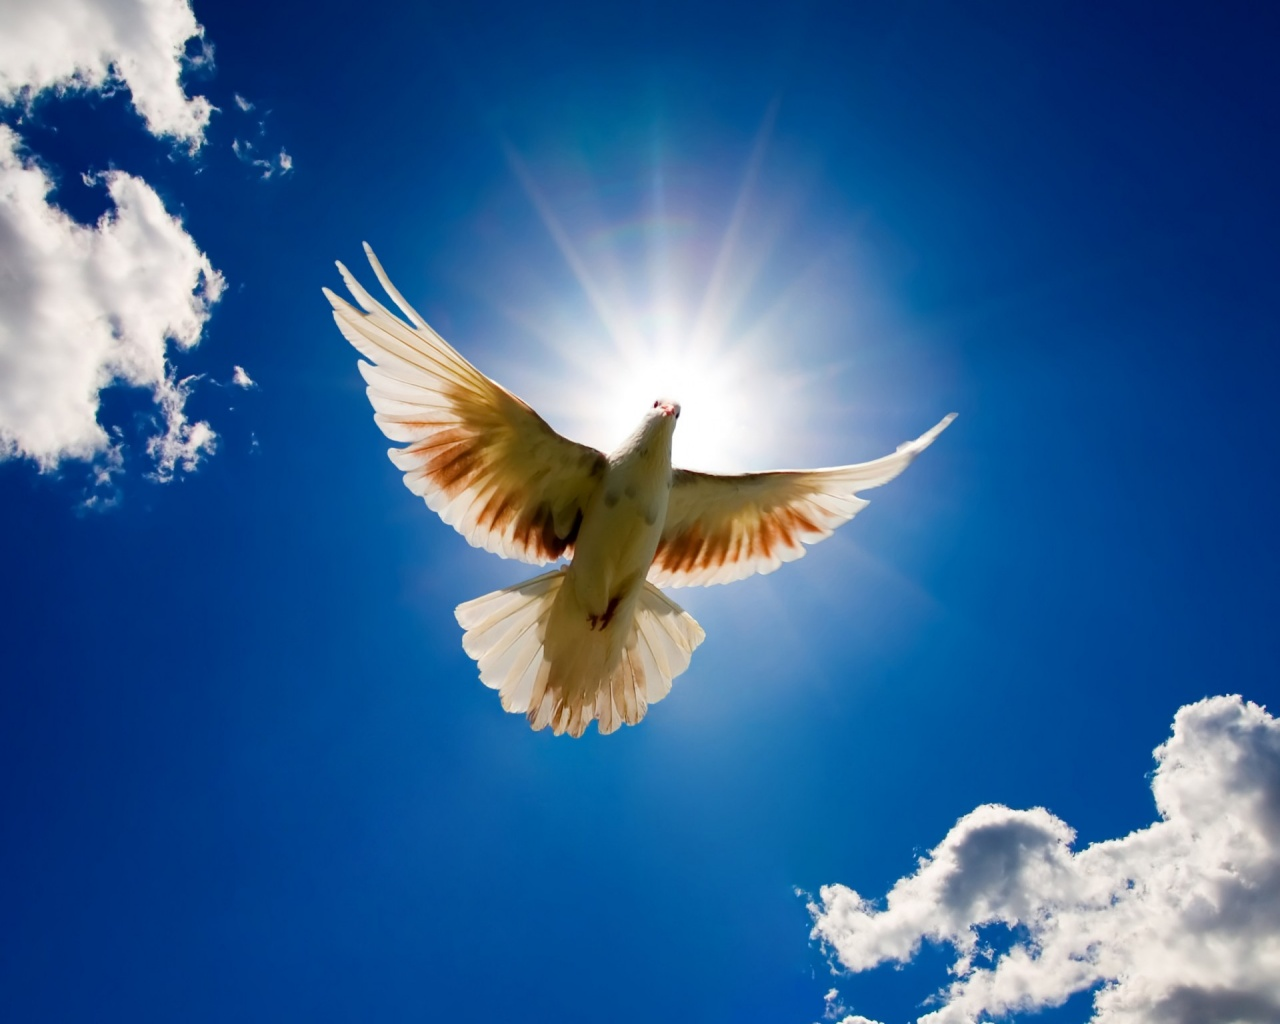 world-peace-dove-wallpaper-2.jpg